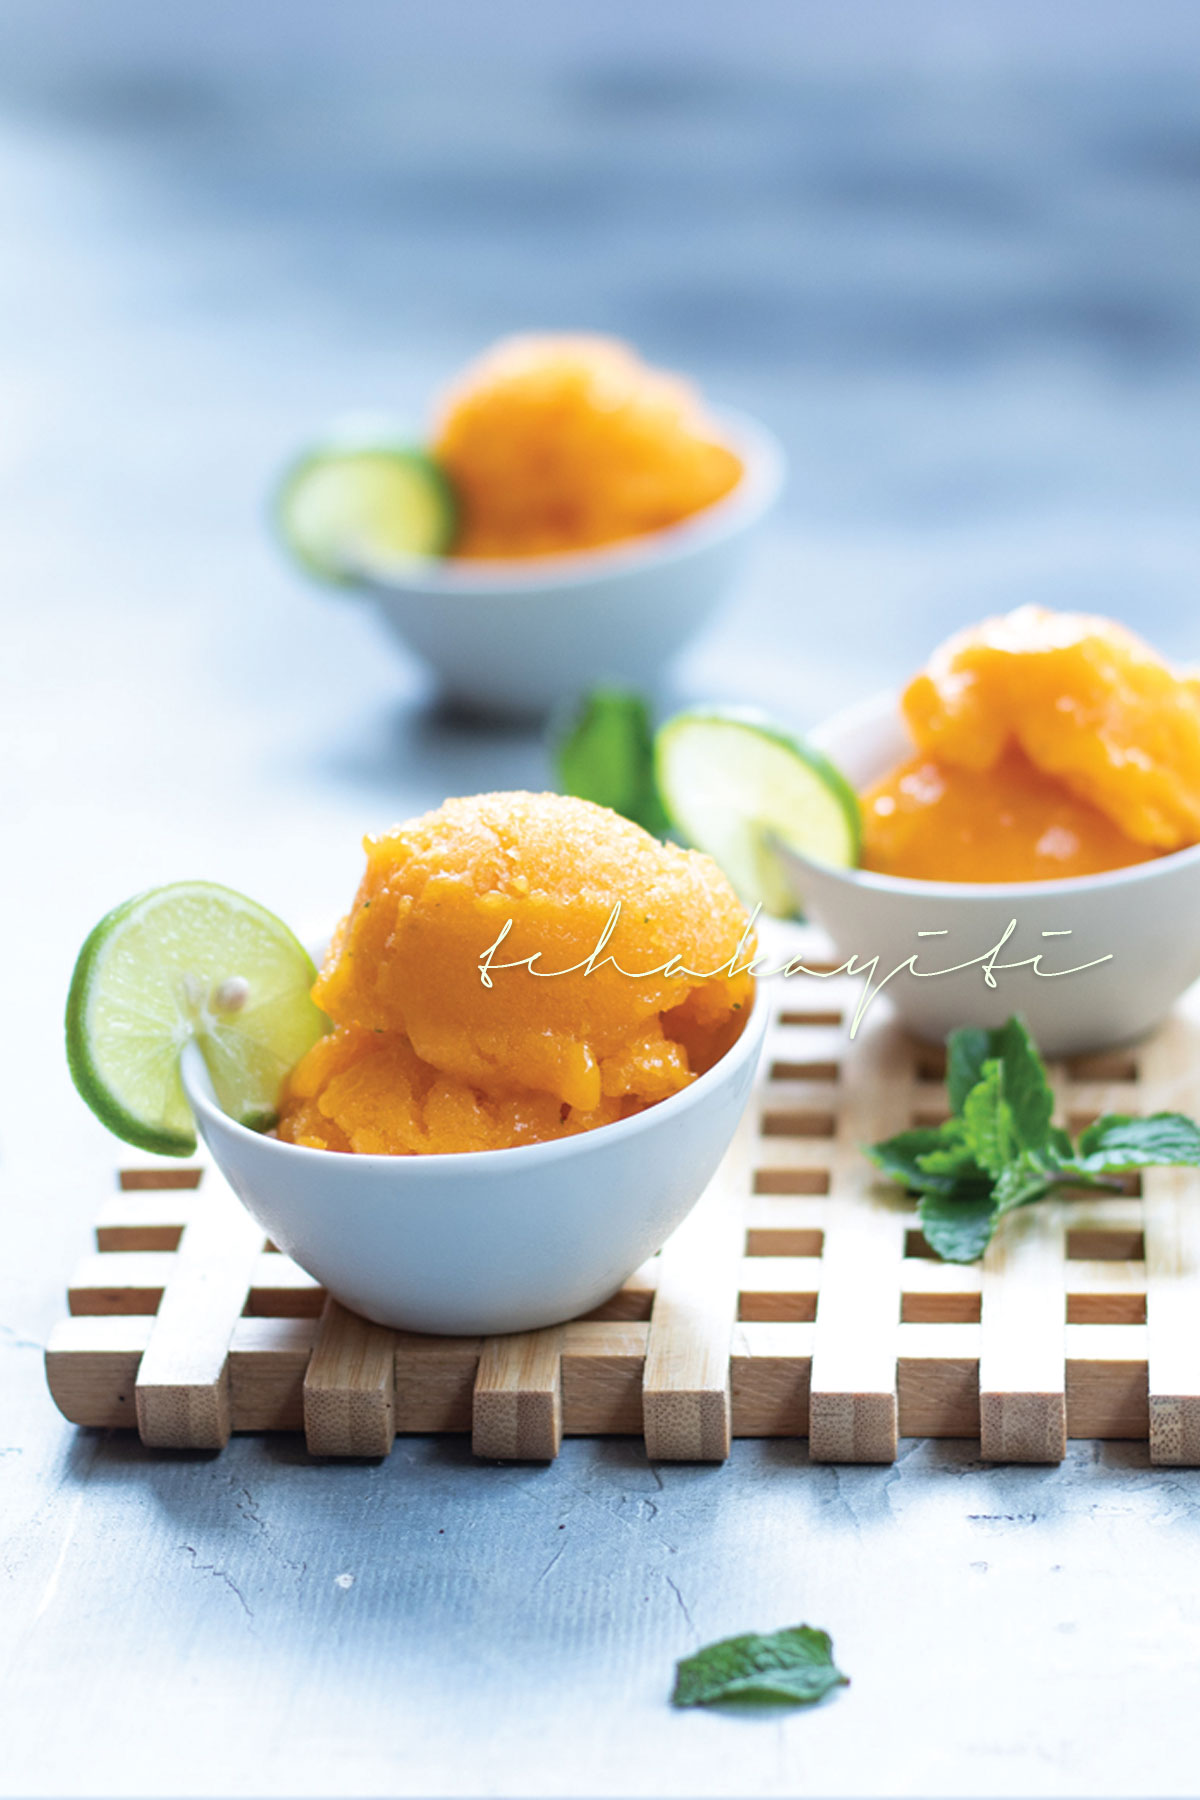 This mango sorbet is easy and simple to make. The perfect treat to cool down on a hot summer day. | tchakayiti.com